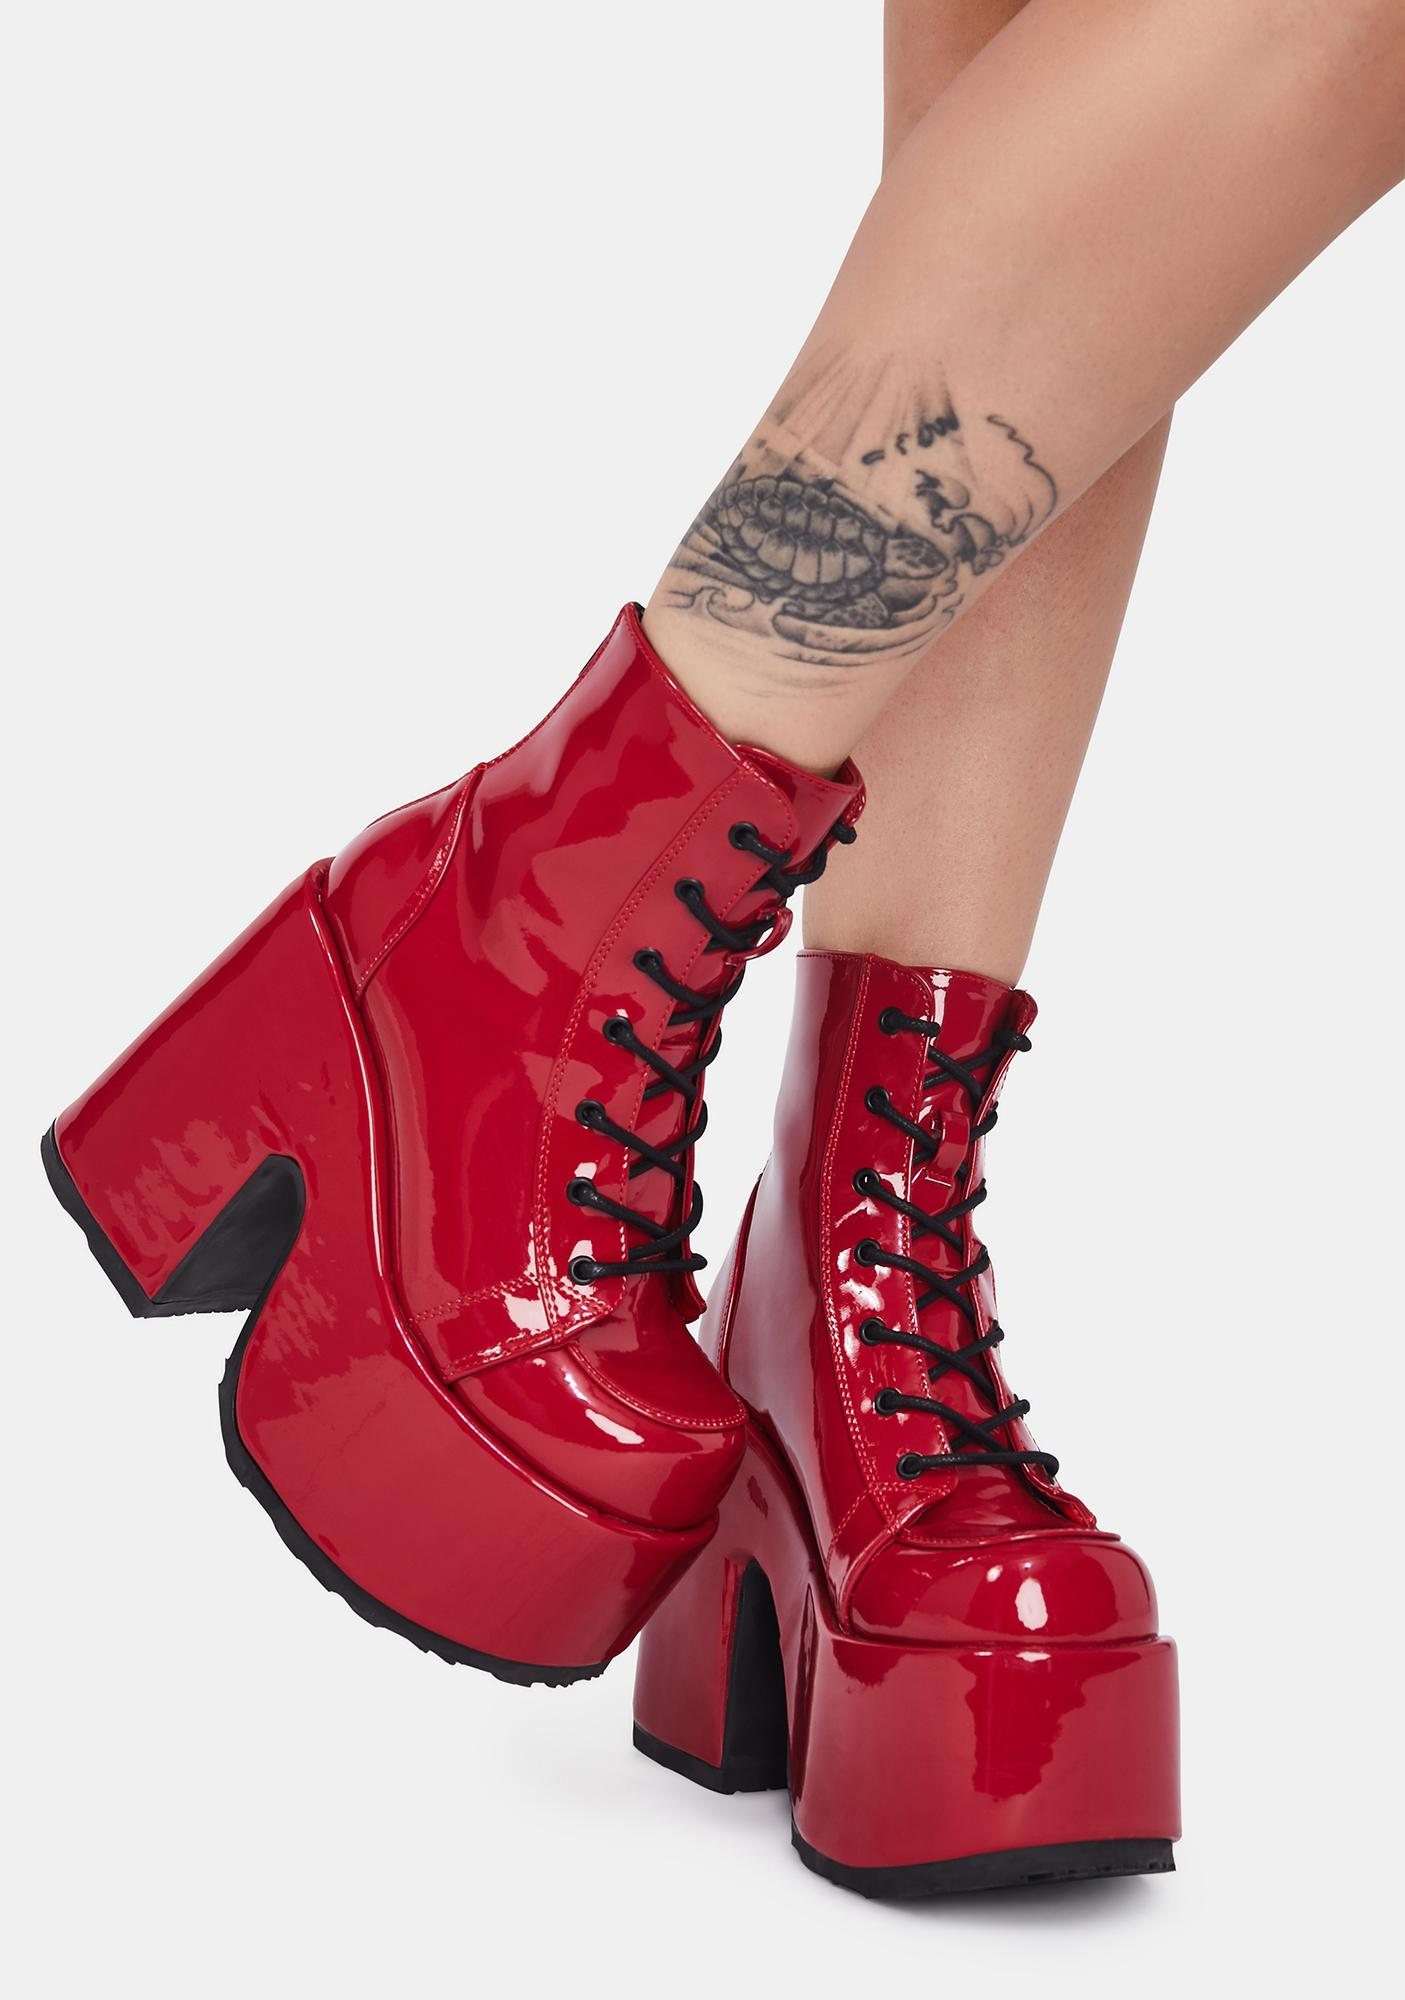 Demonia Hot Rave Royalty Platform Boots